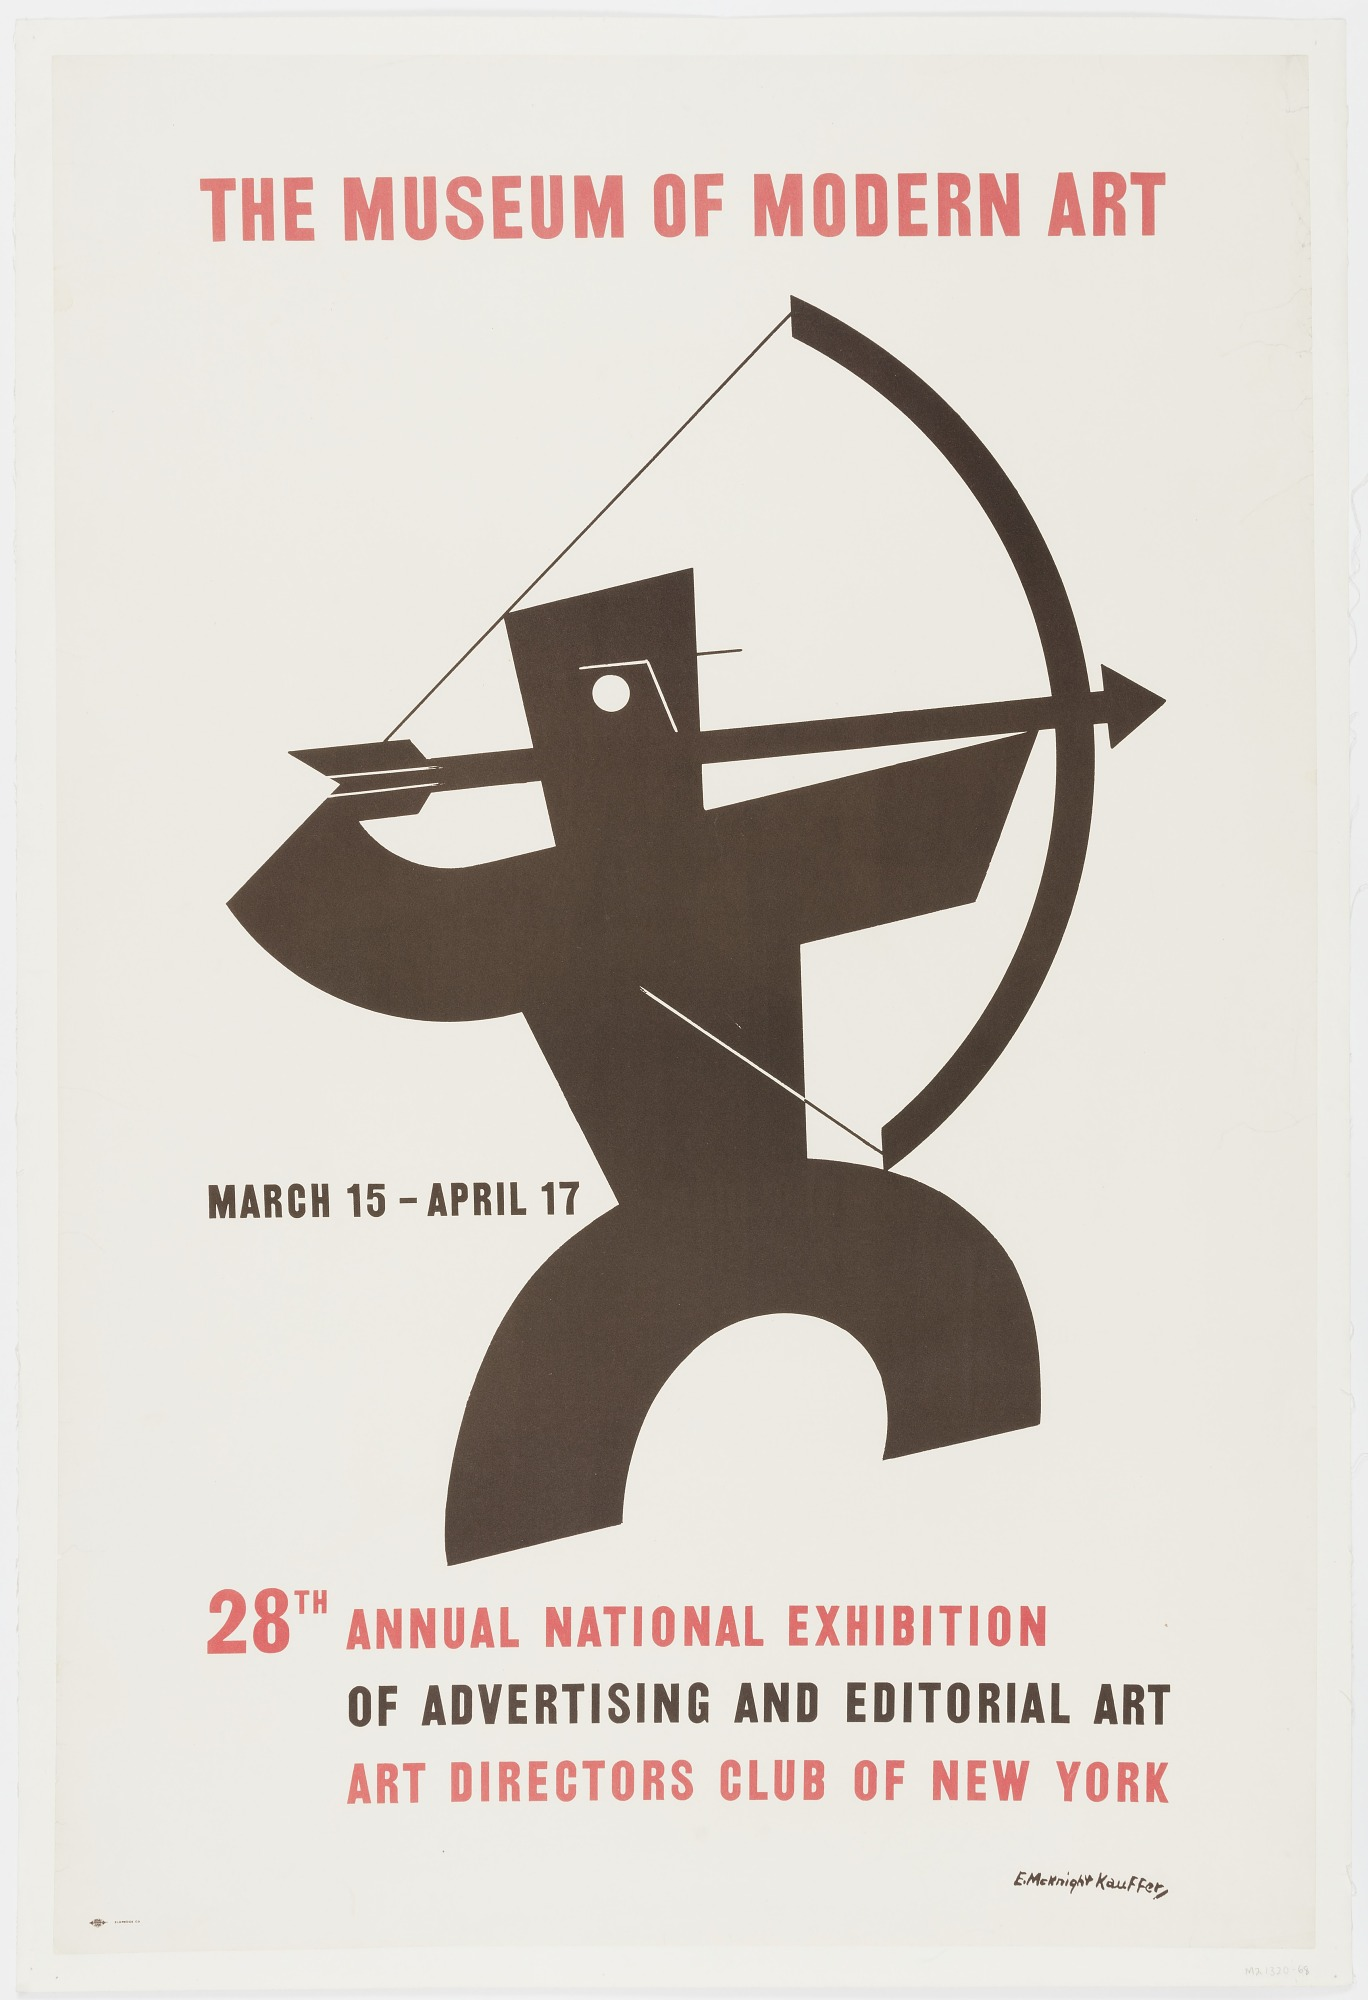 28th Annual National Exhibition of Advertising and Editorial Art